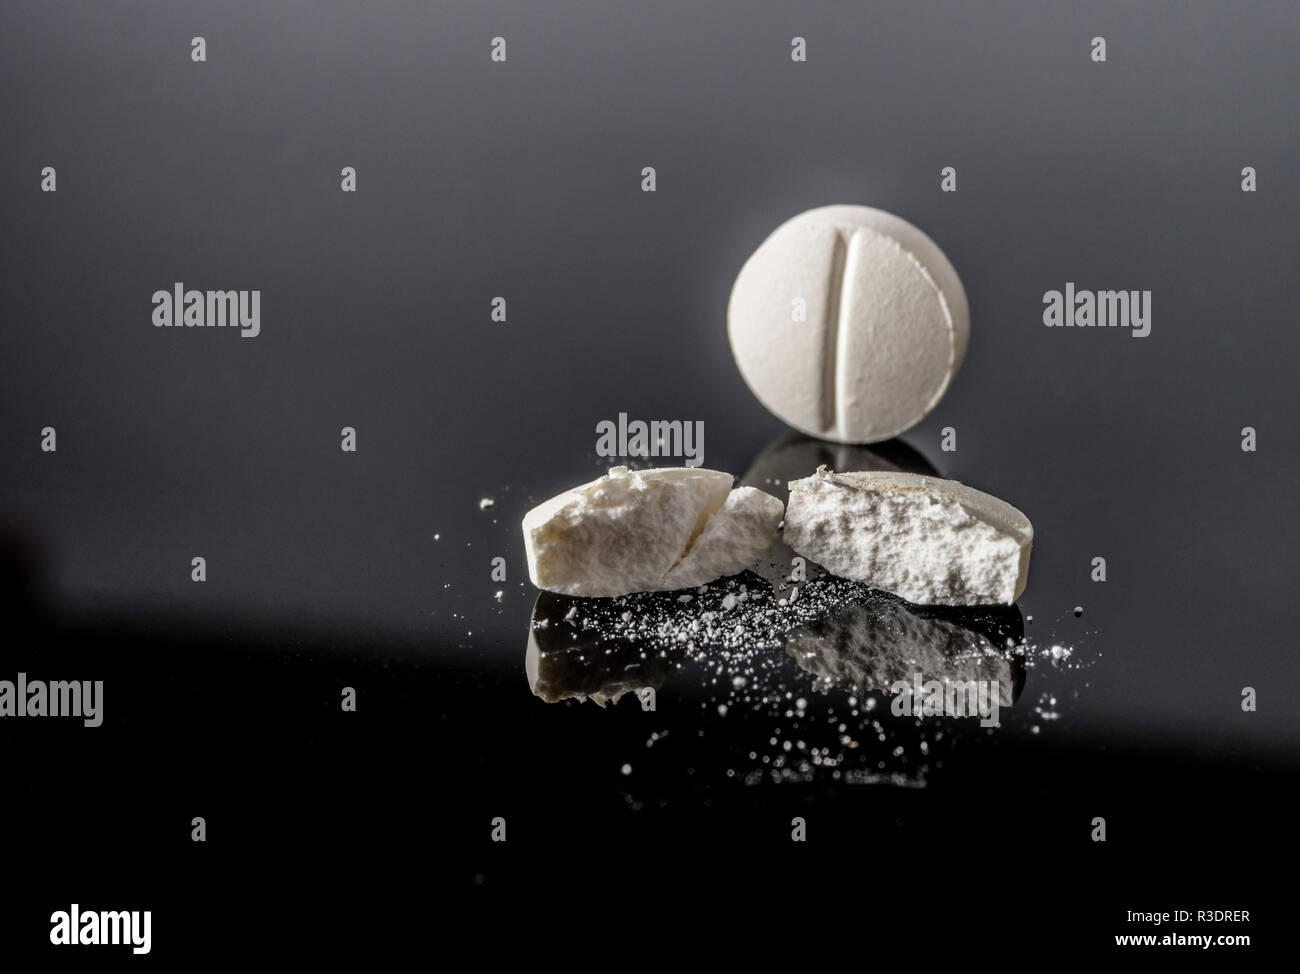 White pill by half isolated in black background, conceptual image - Stock Image